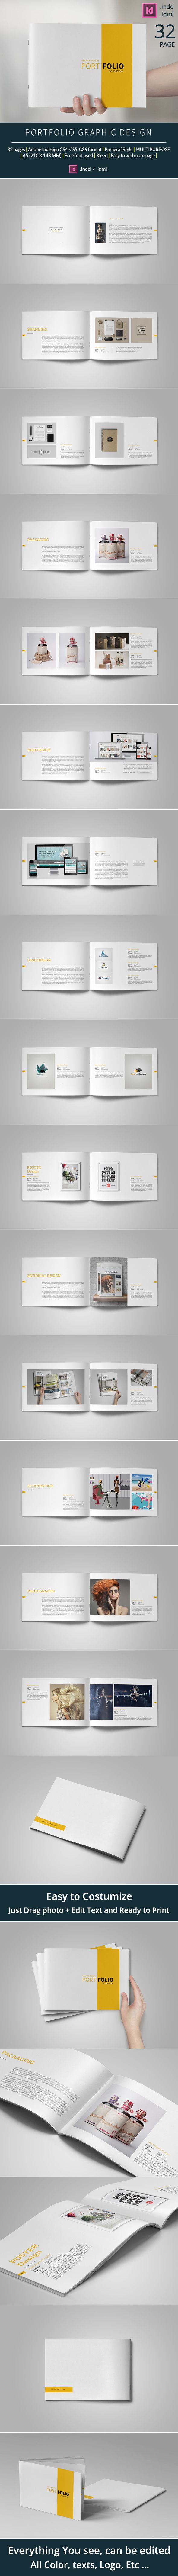 https://www.behance.net/gallery/24281663/Graphic-Design-Portfolio-Template